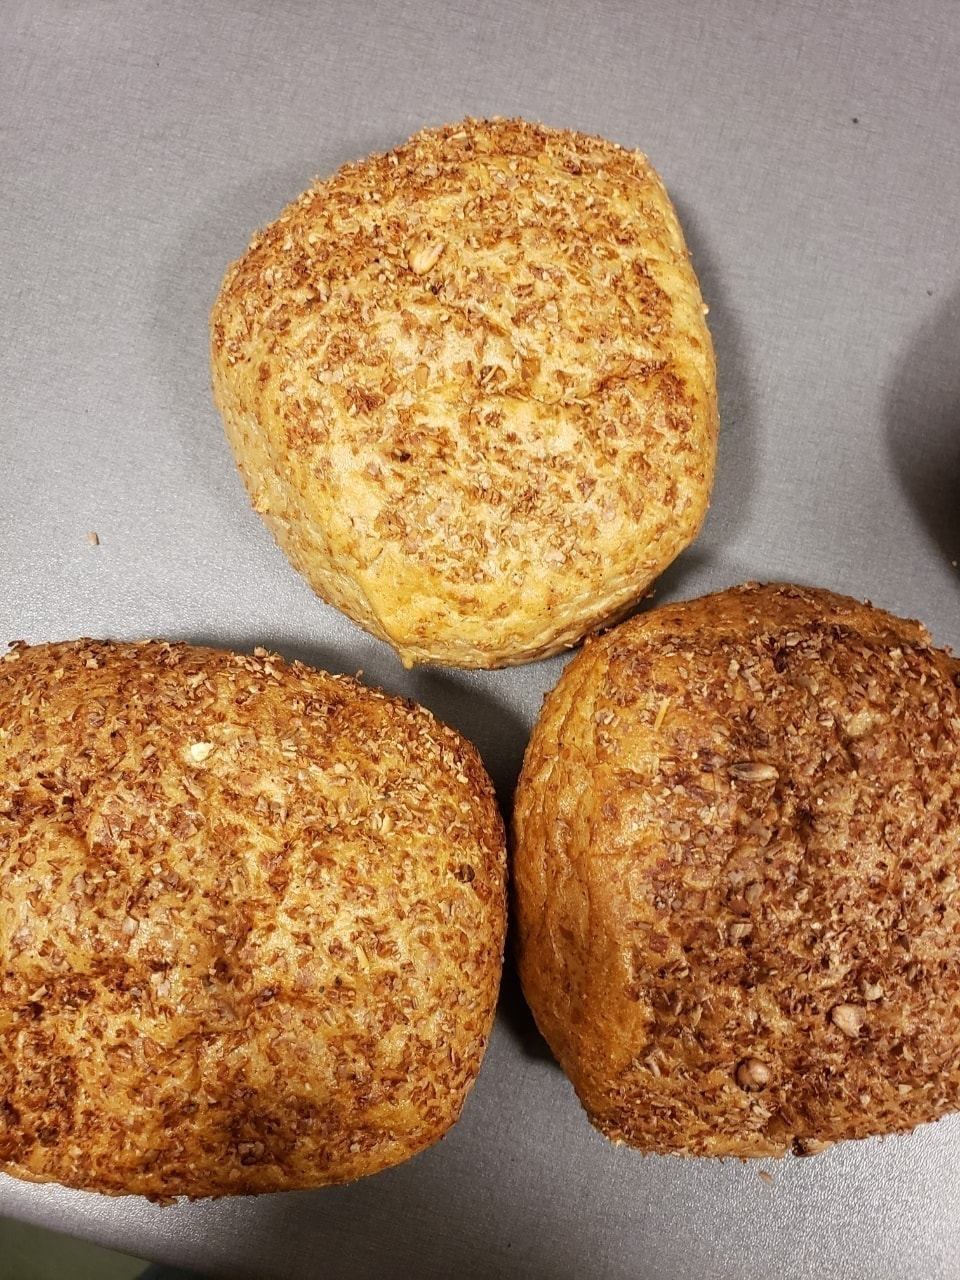 Fresh bread 10/02 from lindquists